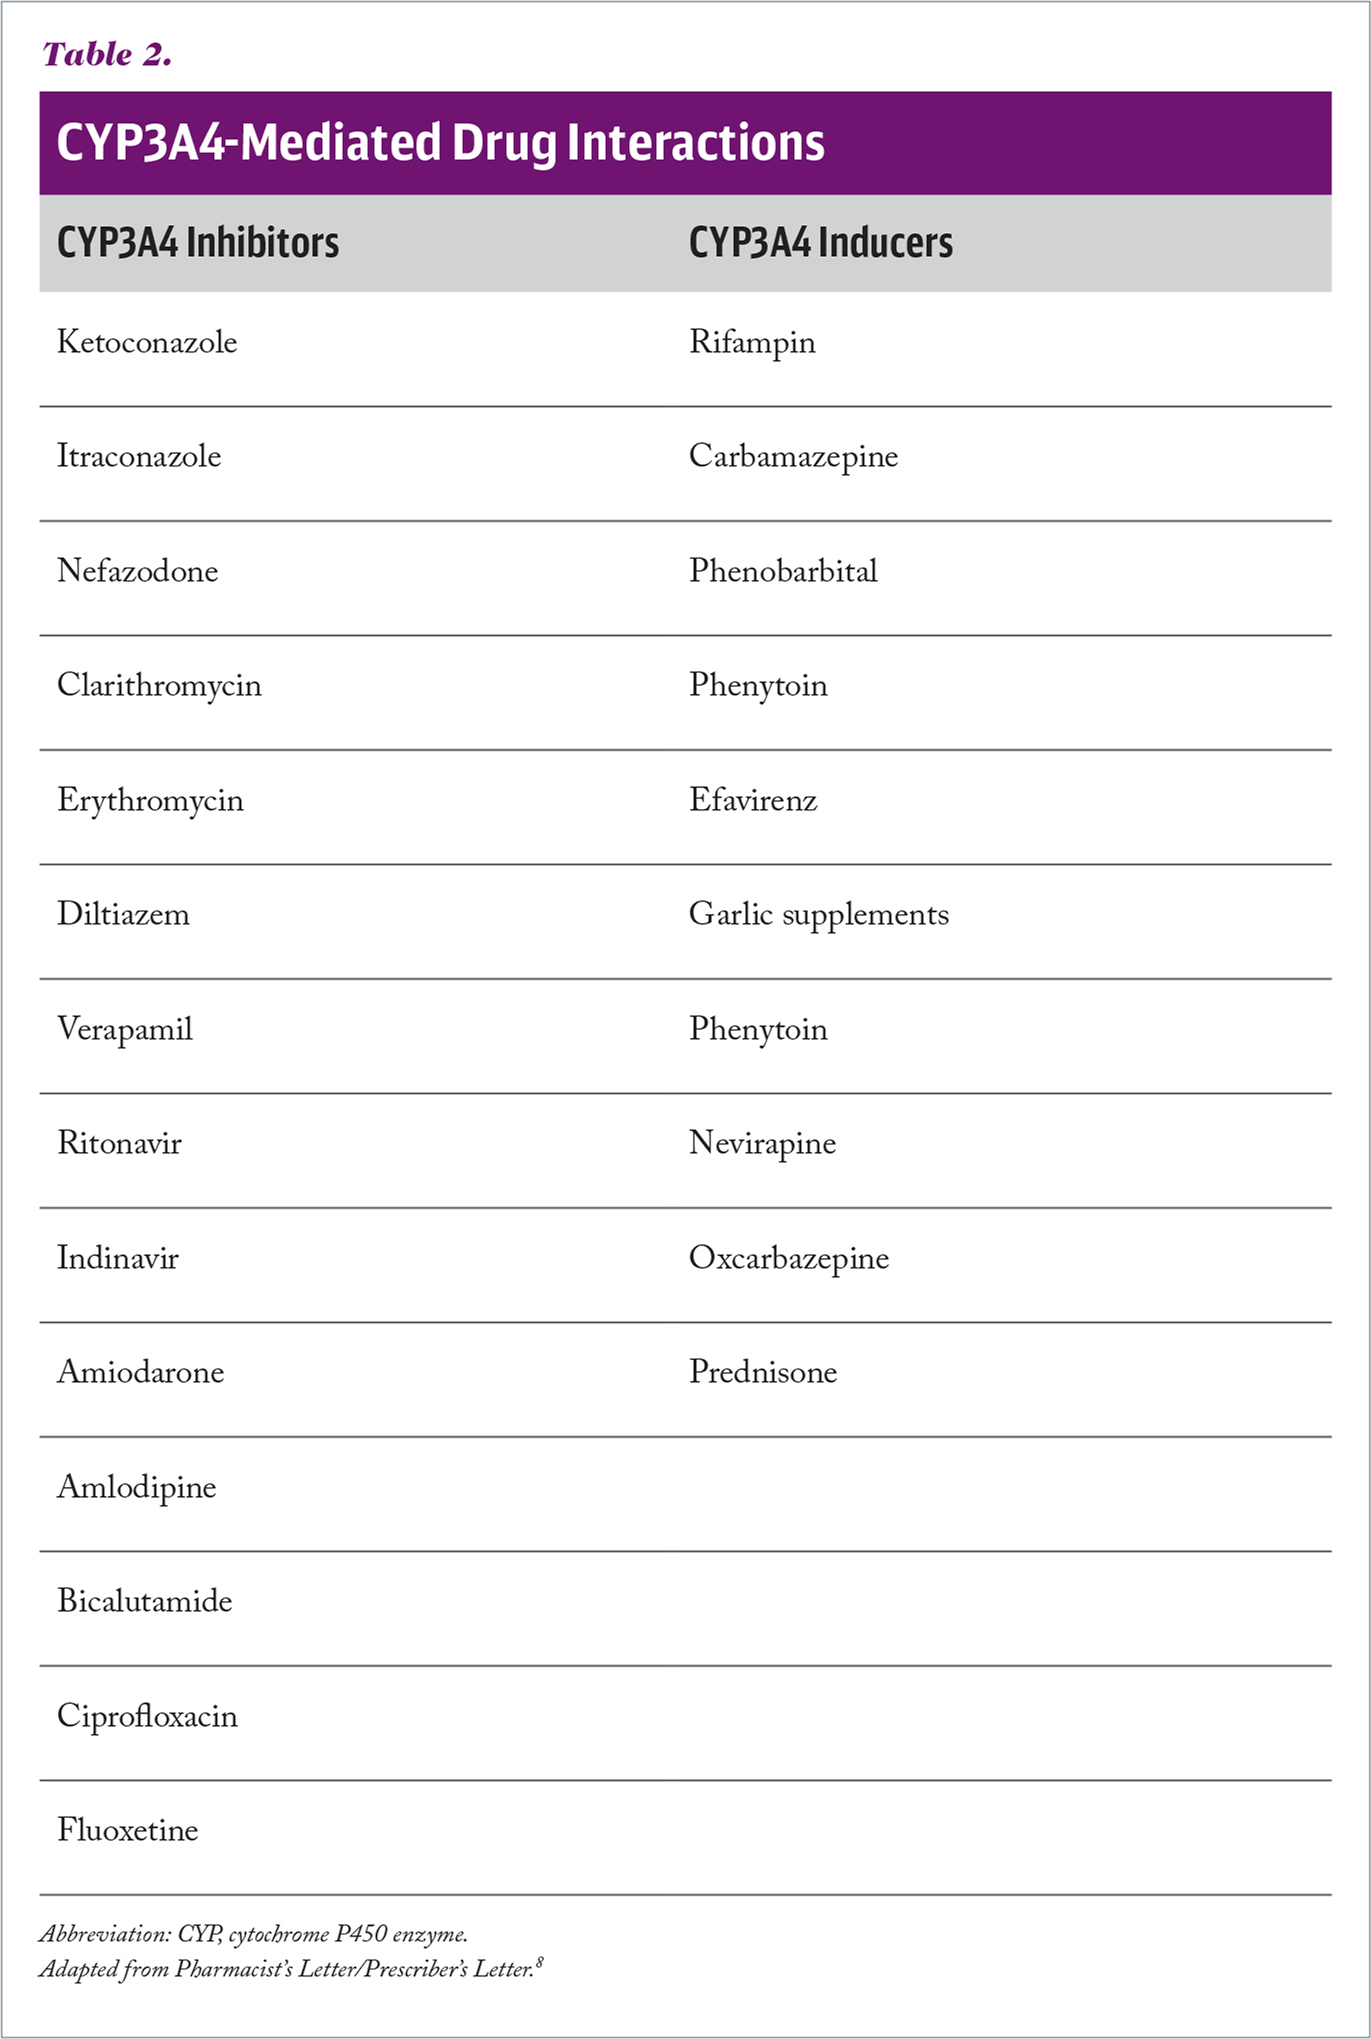 CYP3A4-Mediated Drug Interactions